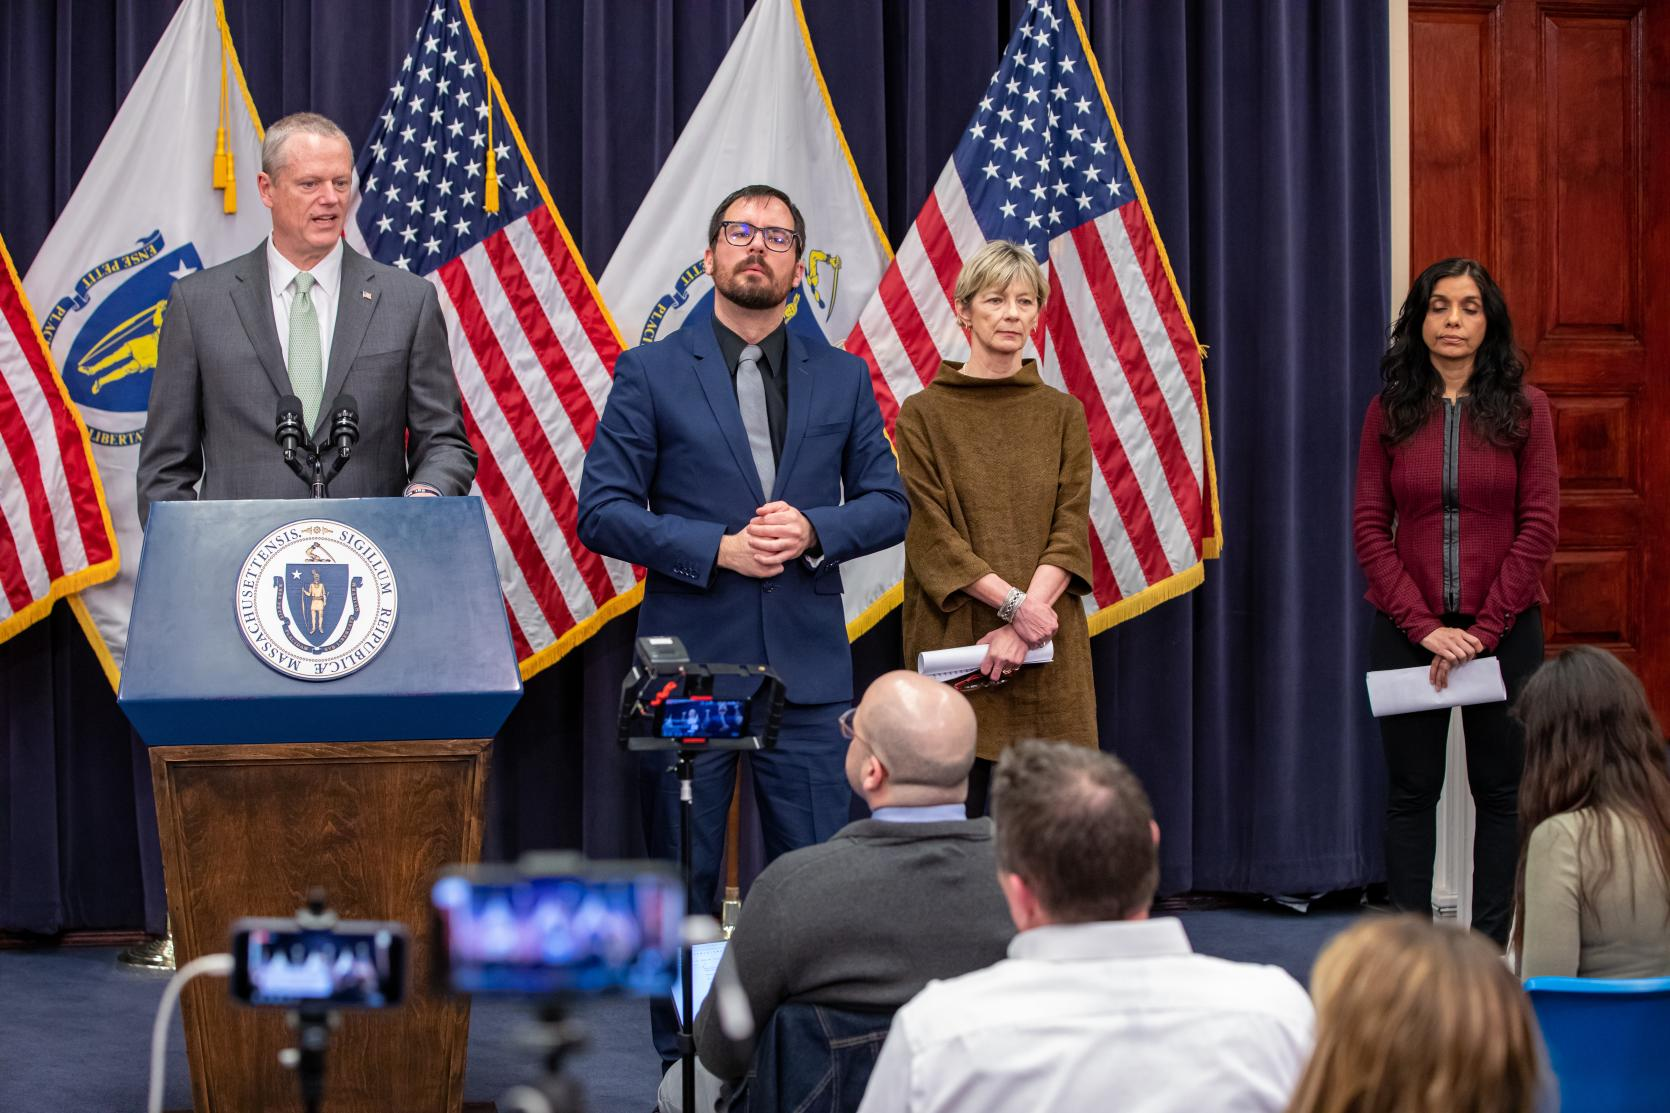 Baker-Polito Administration Announces Changes To Expedite Health Care Licensing, Increase Support For Local Boards Of Health And Small Businesses